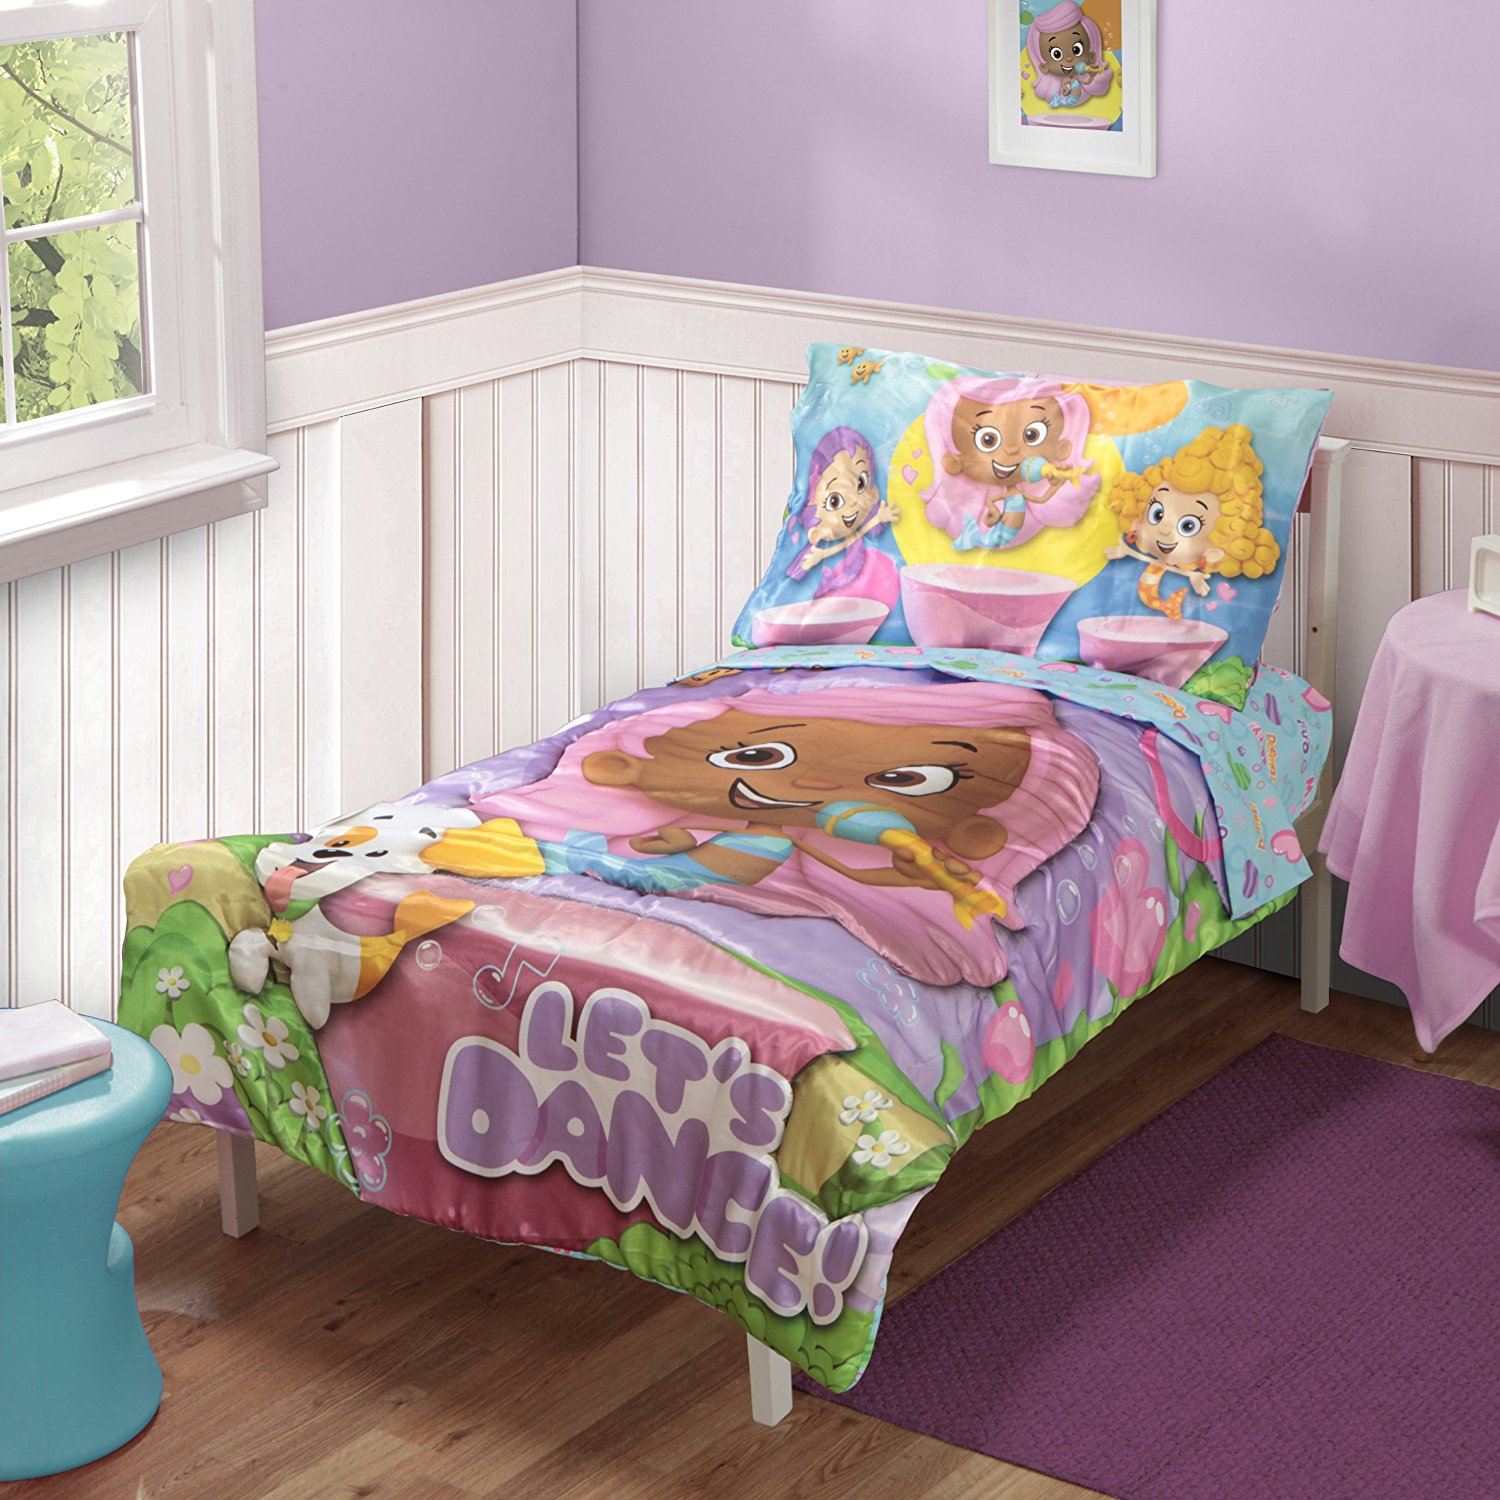 Minecraft Bedding Queen | Bubble Guppies Bedding | Jcpenney Kids Bedding